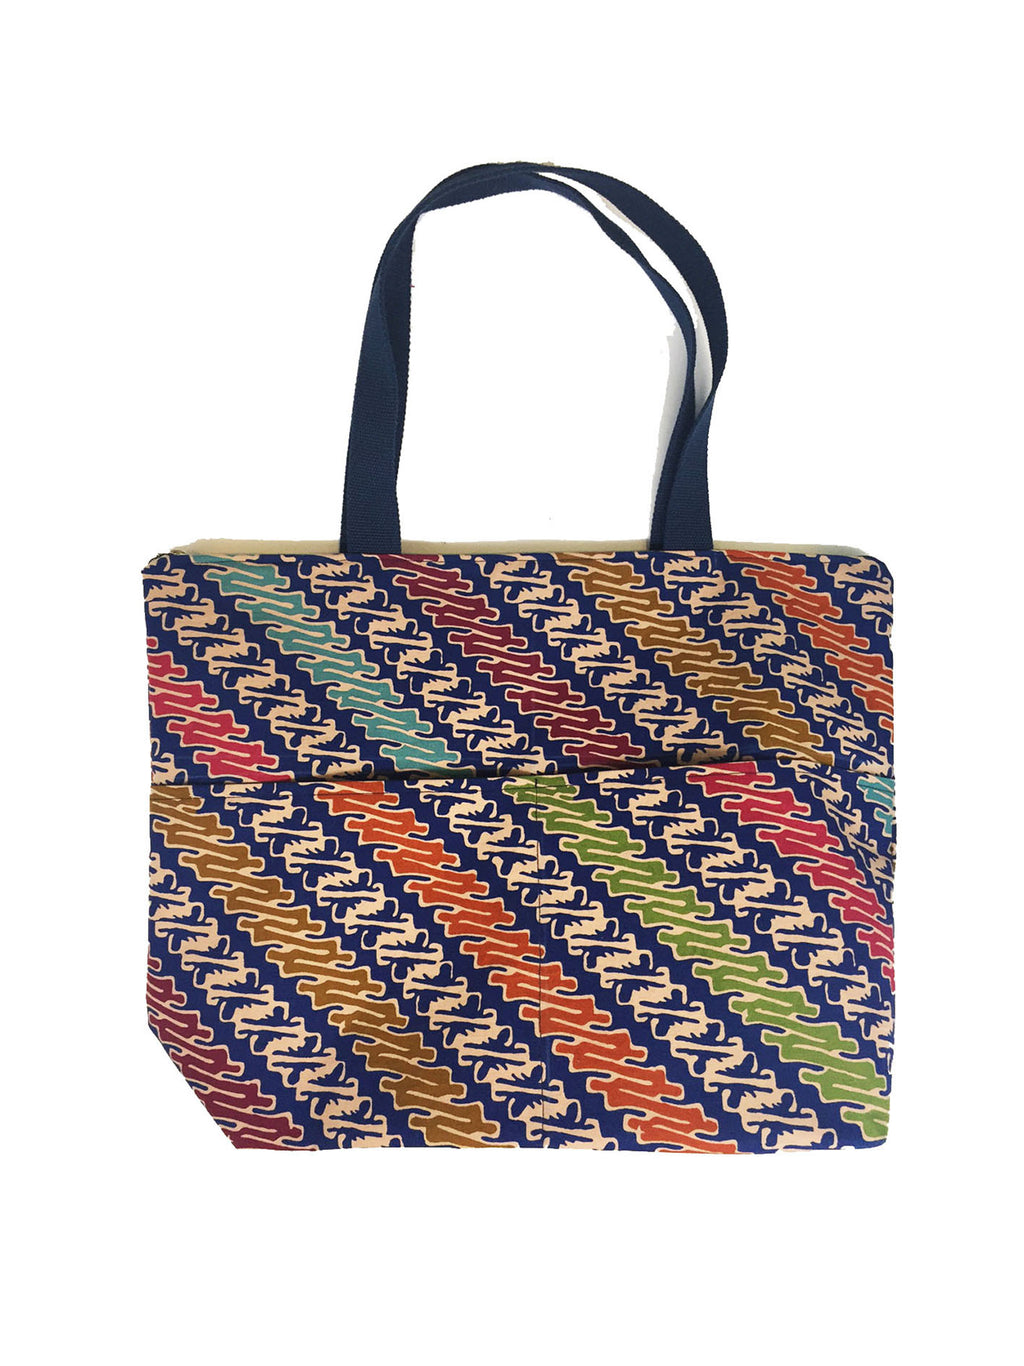 CWO Medium Tote Bag with Zipper (Colourful)